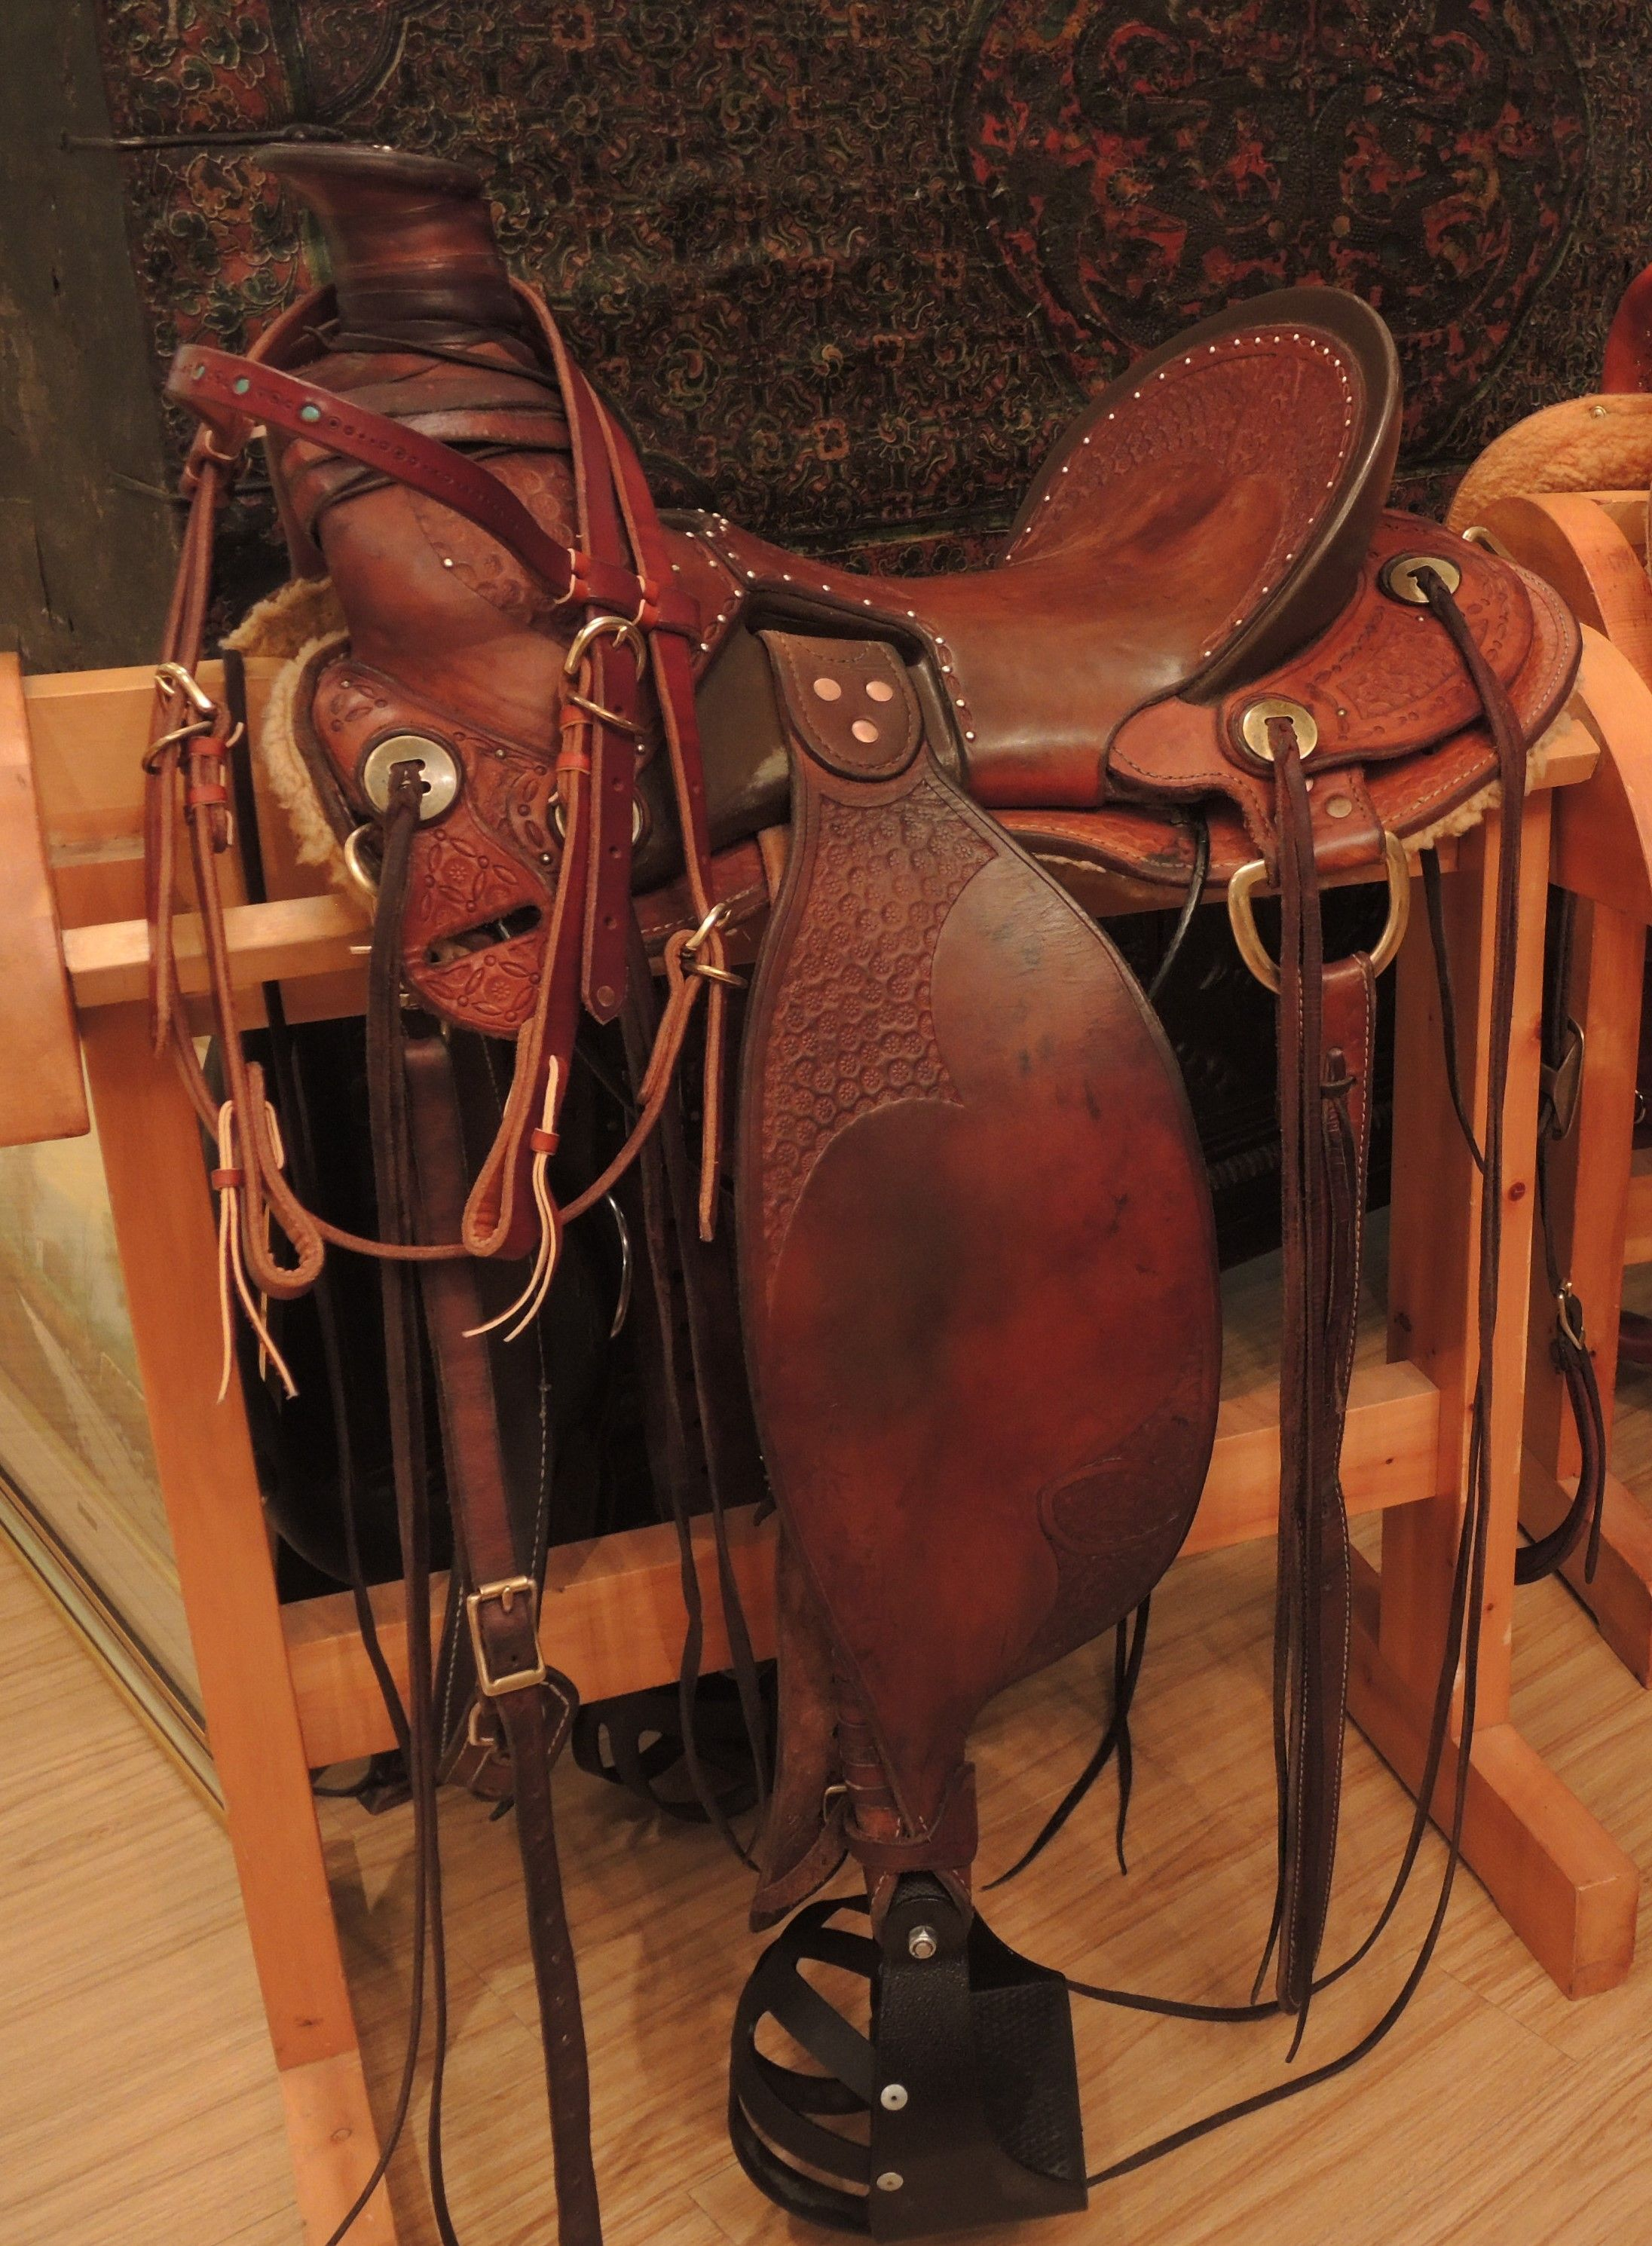 Lightweight Saddle By Stone Horse Saddles Exhibited In An Ulaanbaatar Mongolia Art Gallery Stone Horse Sadd Saddles Barrel Racing Saddles Western Saddle